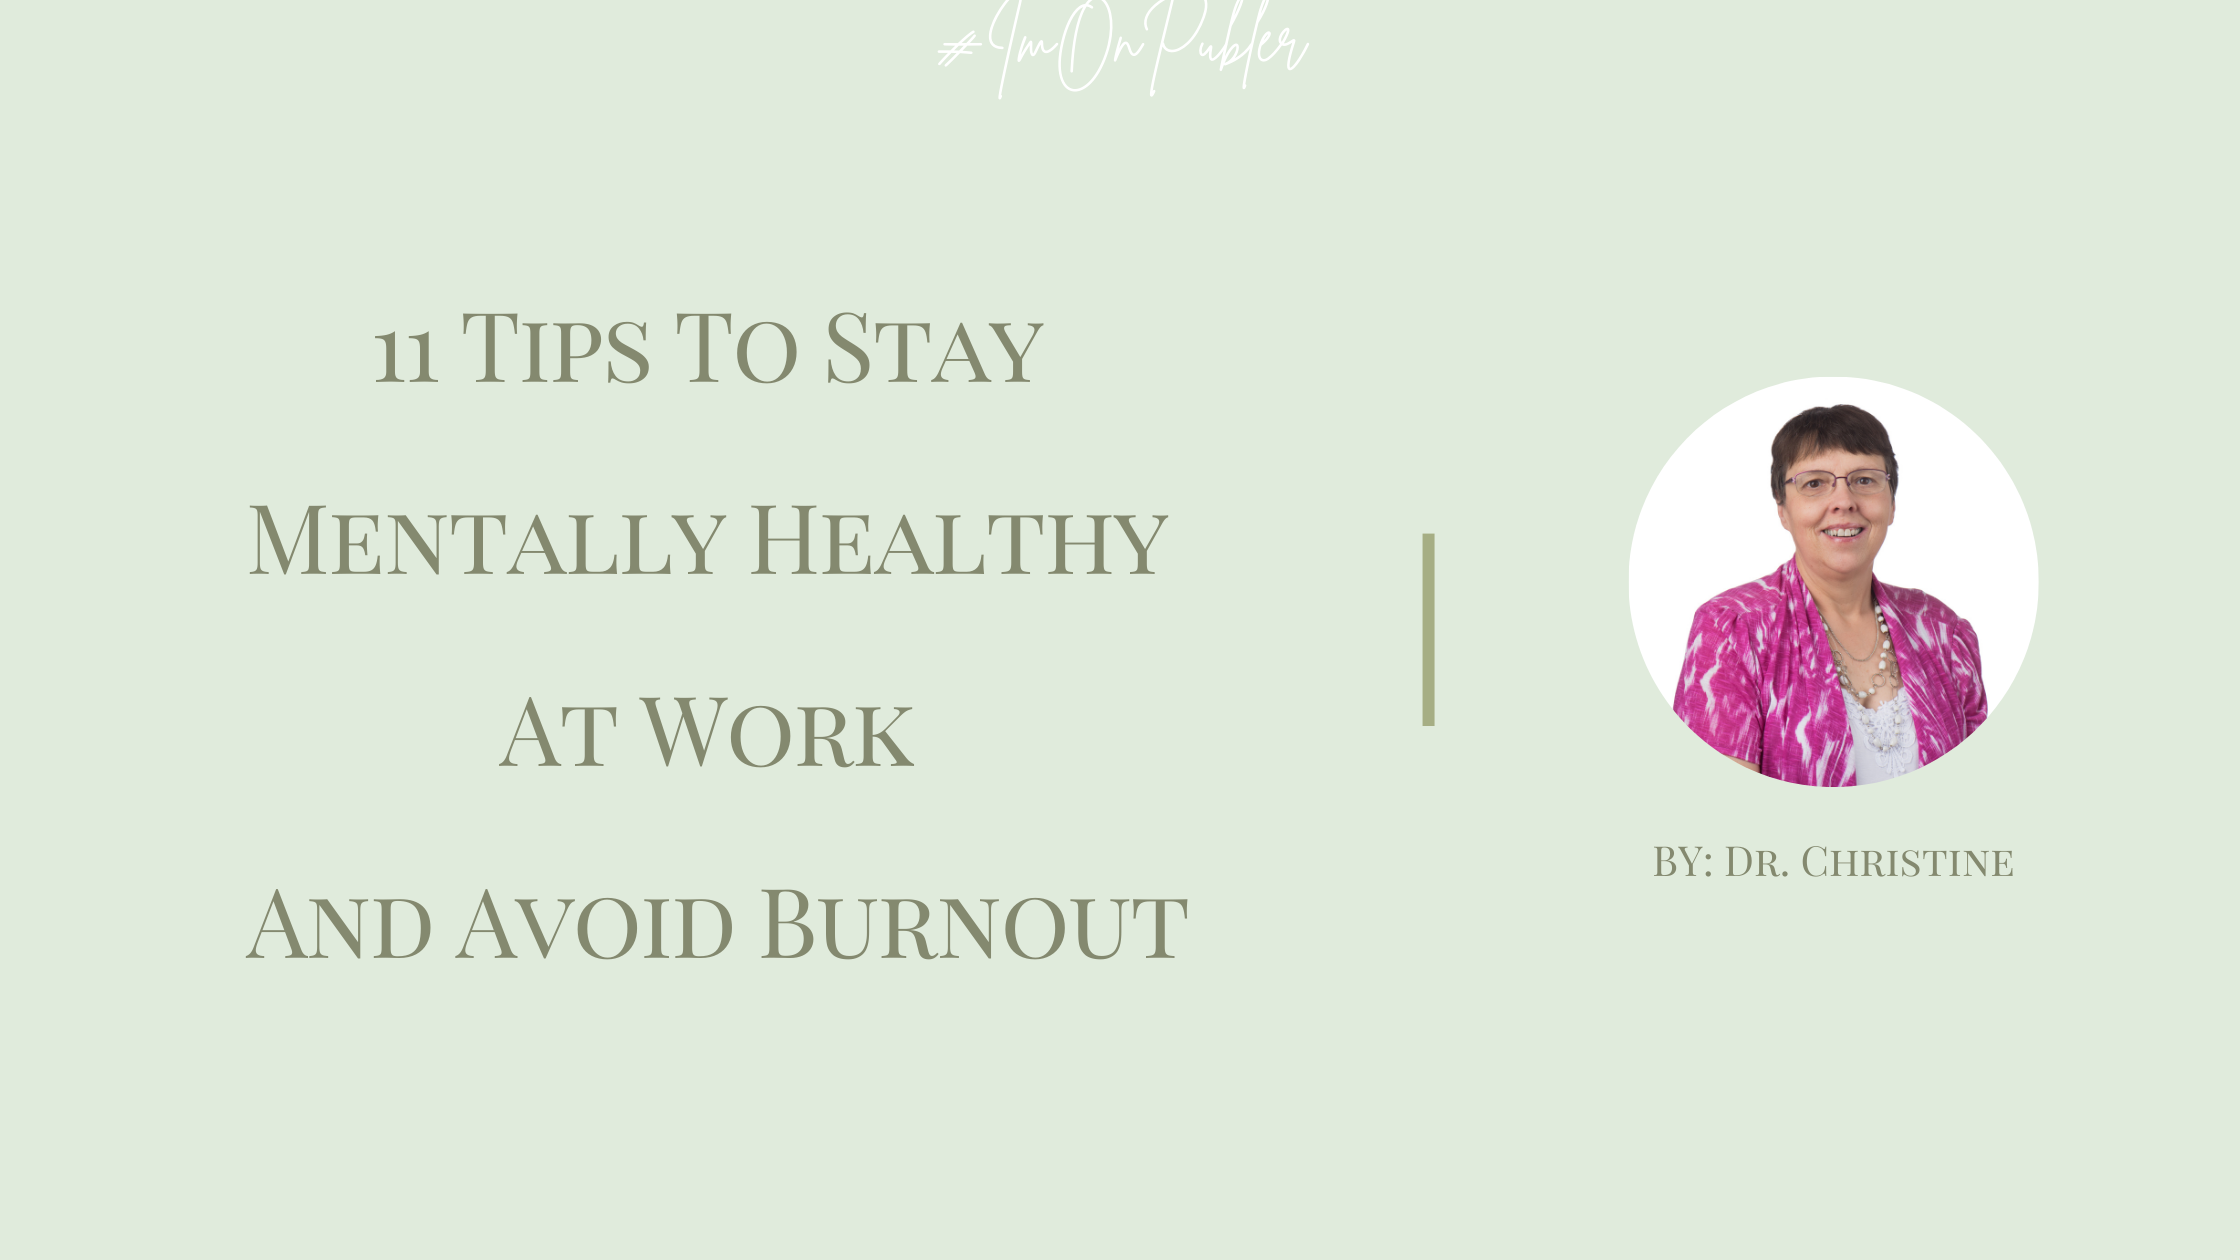 11 Tips To Stay Mentally Healthy At Work And Avoid Burnout by Dr. Christine